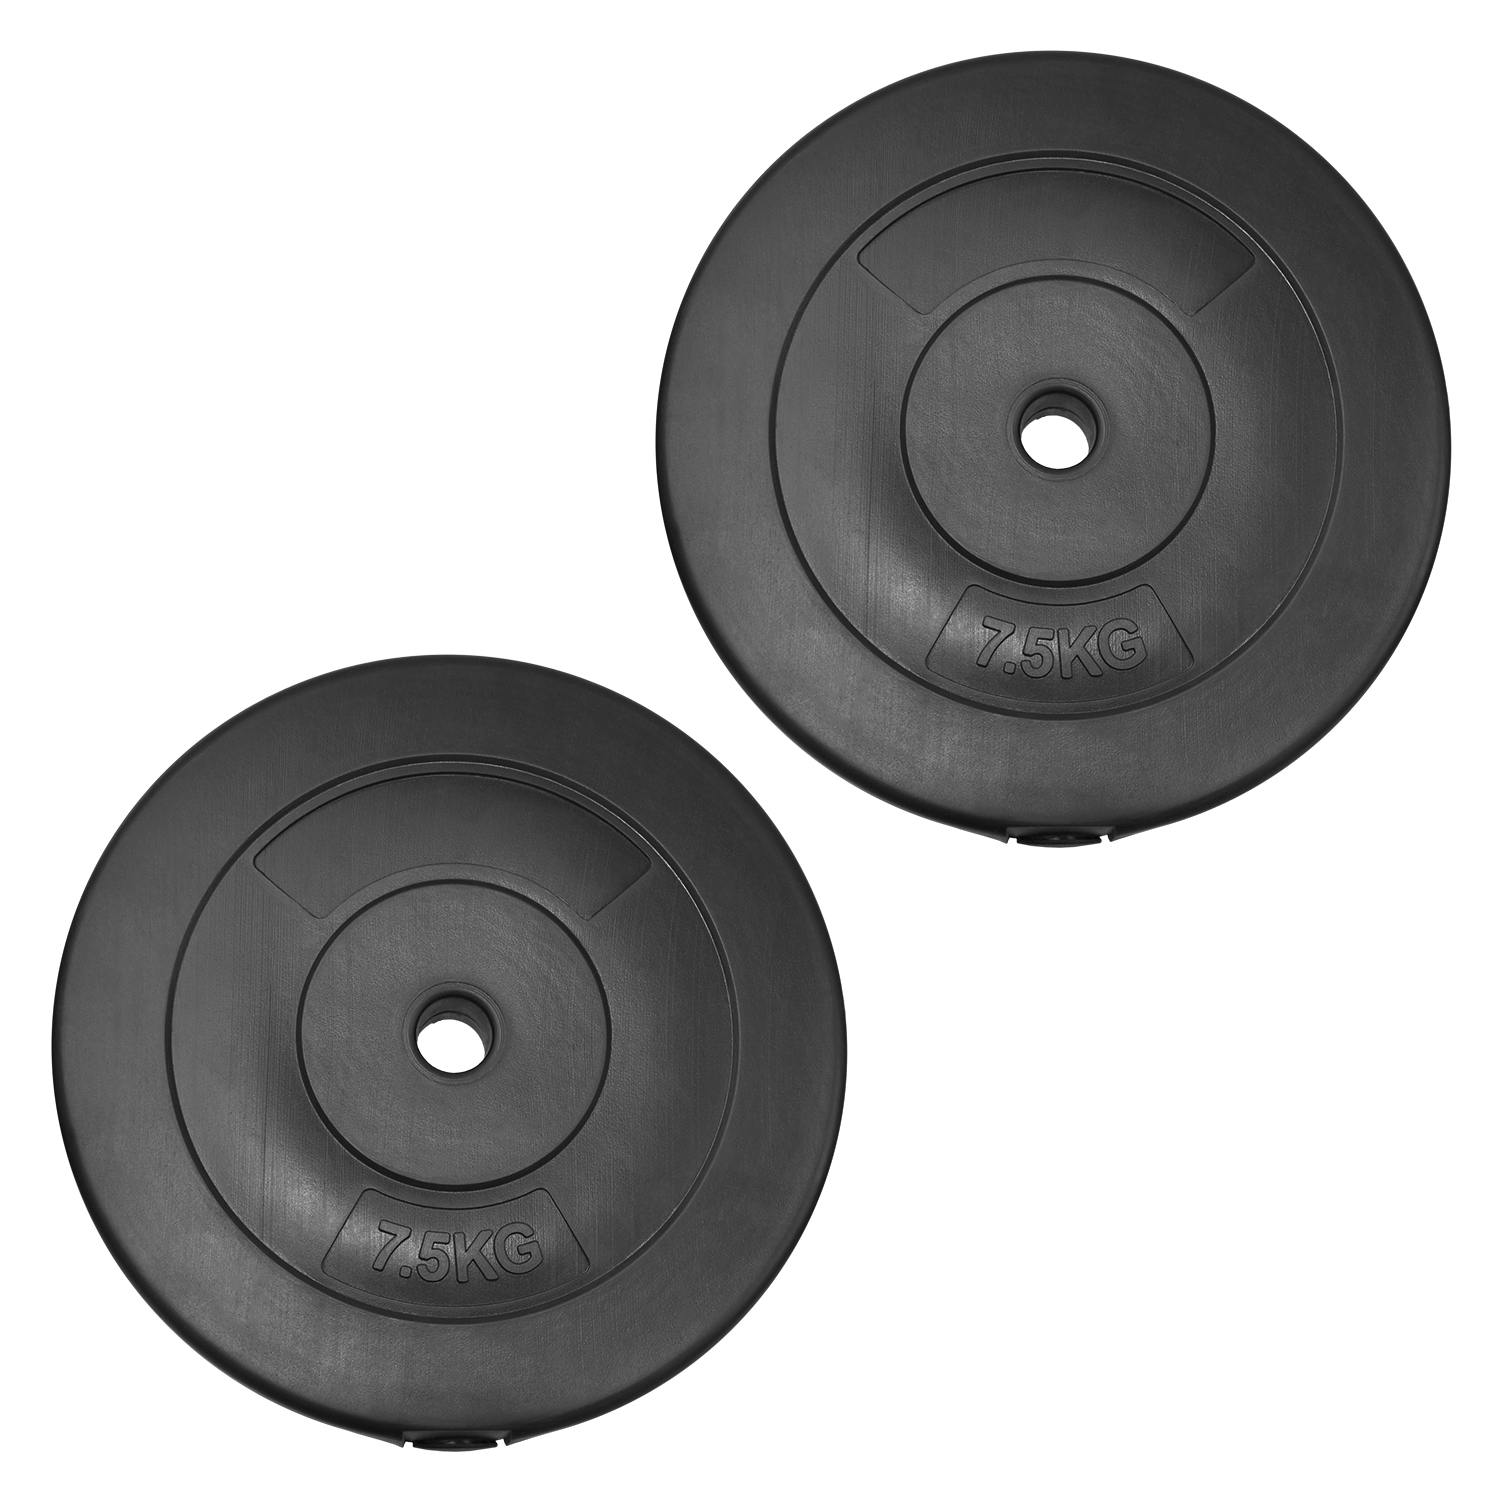 Dumbbell Weight Plates